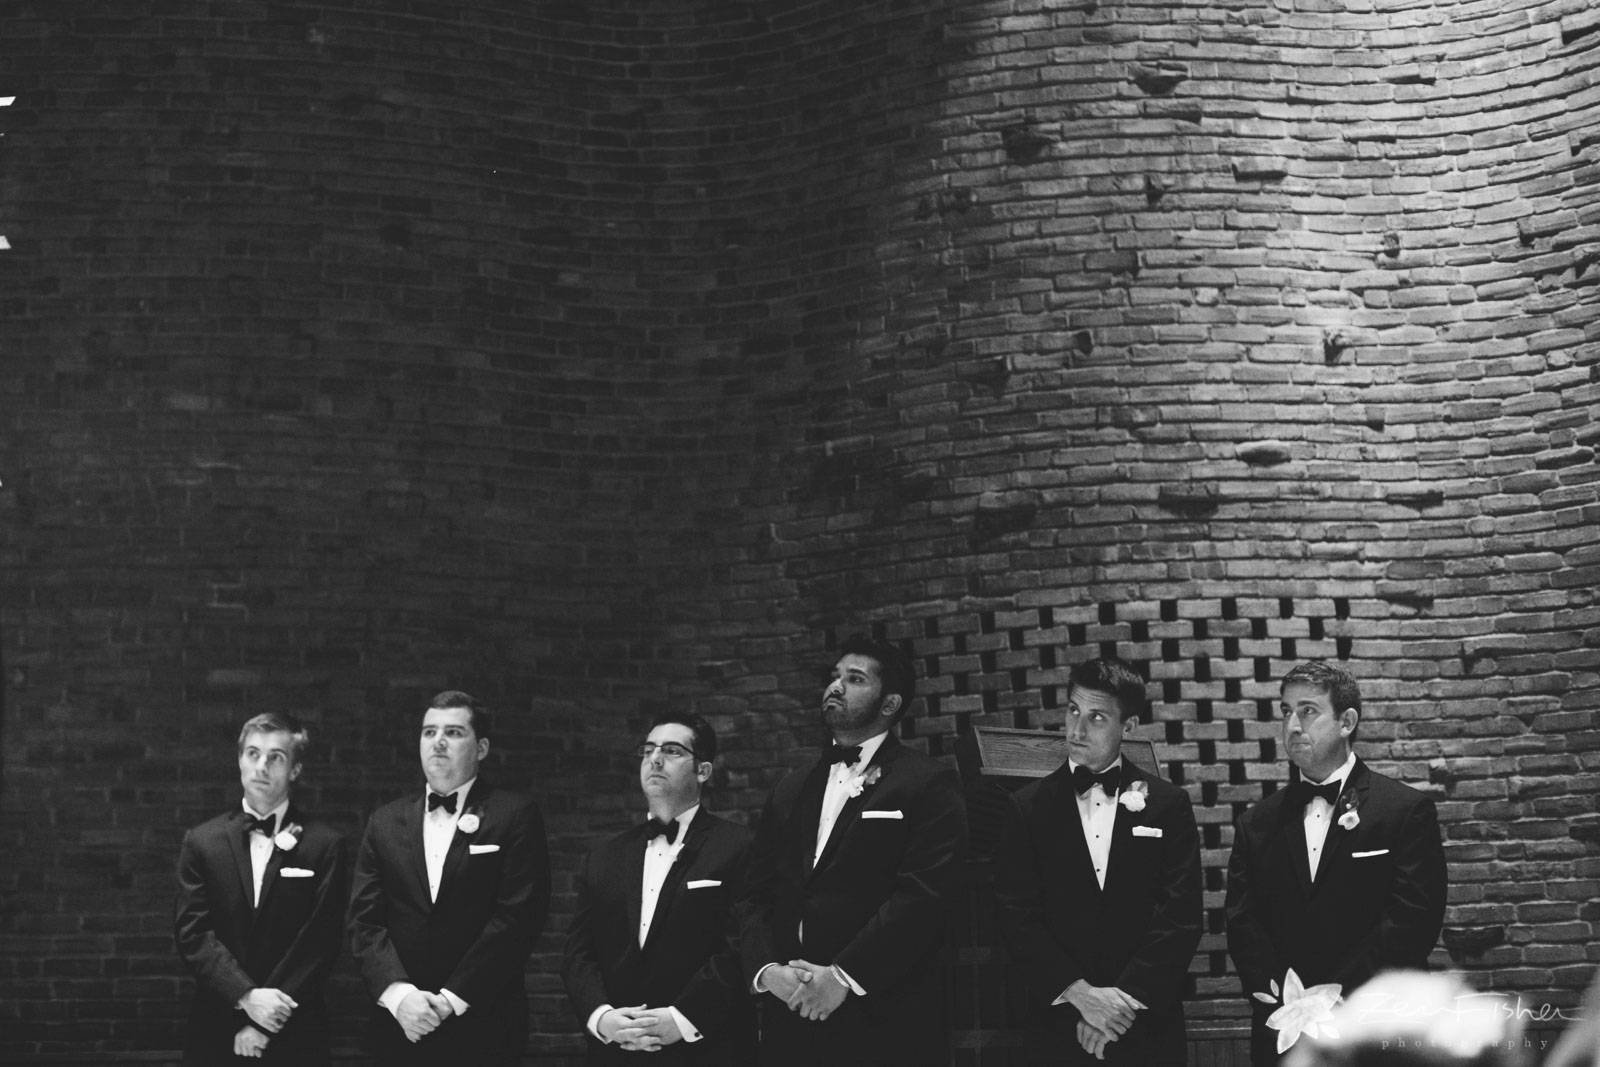 Groomsmen stand in a line in front of brick wall, intently watching ceremony unfold.